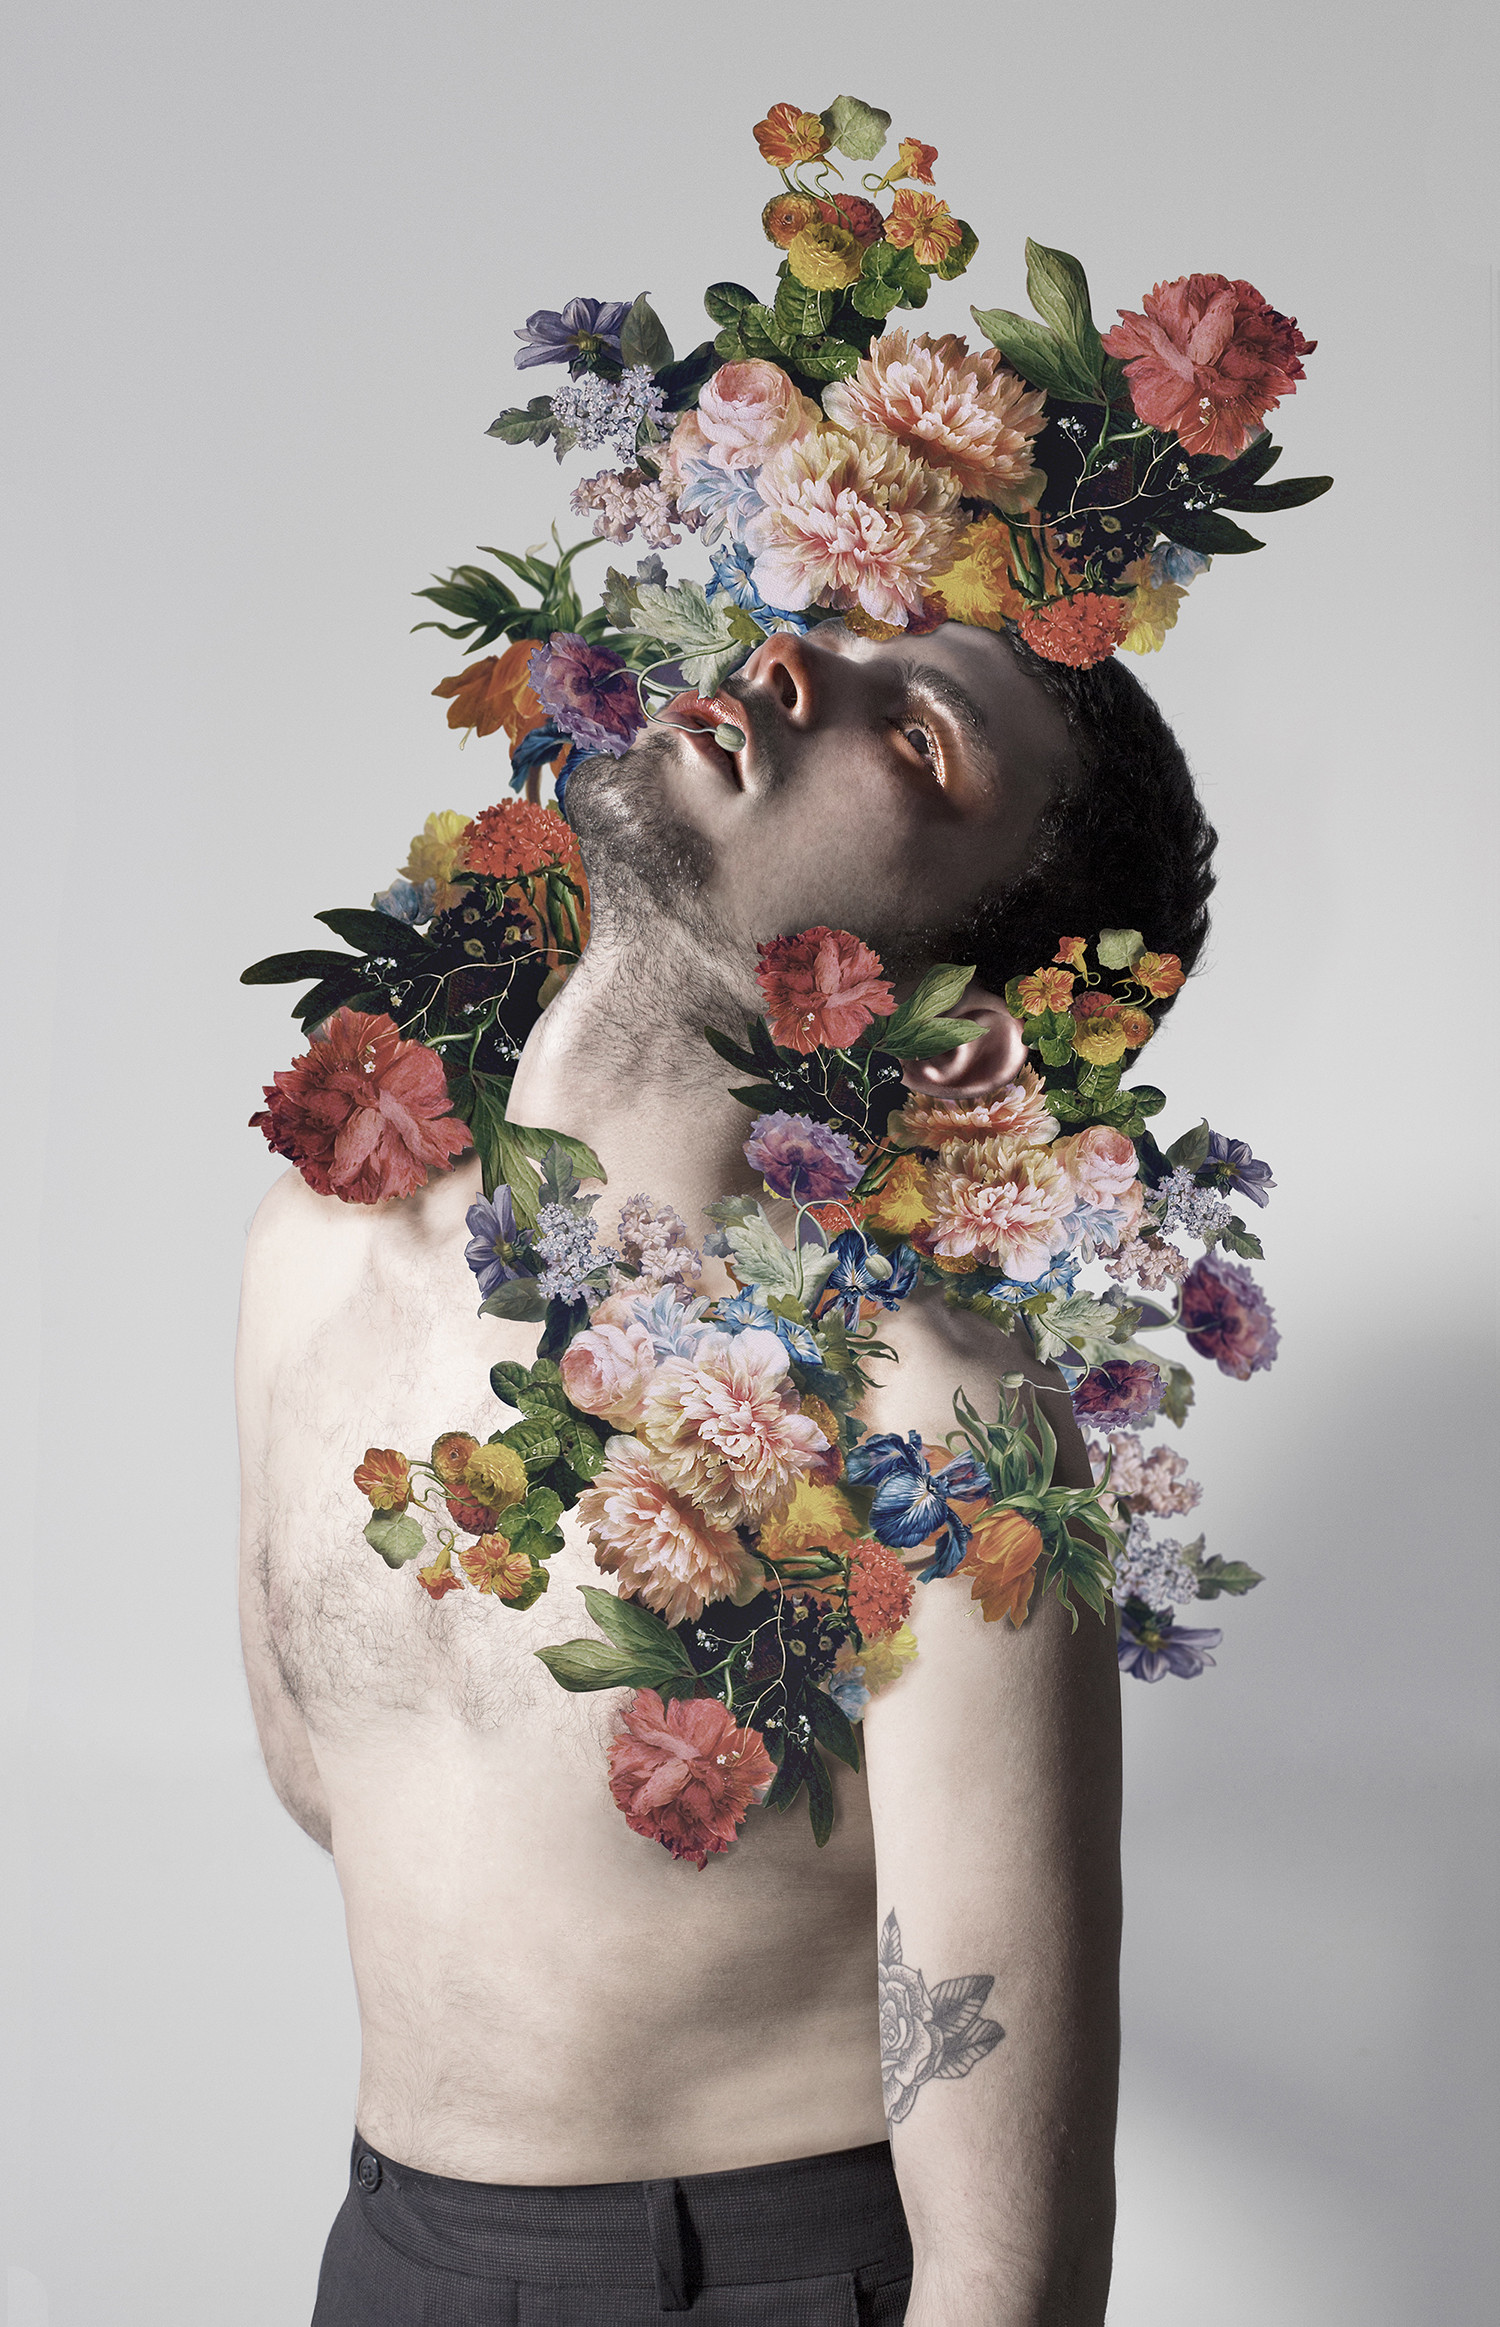 flowers covering man, otherness